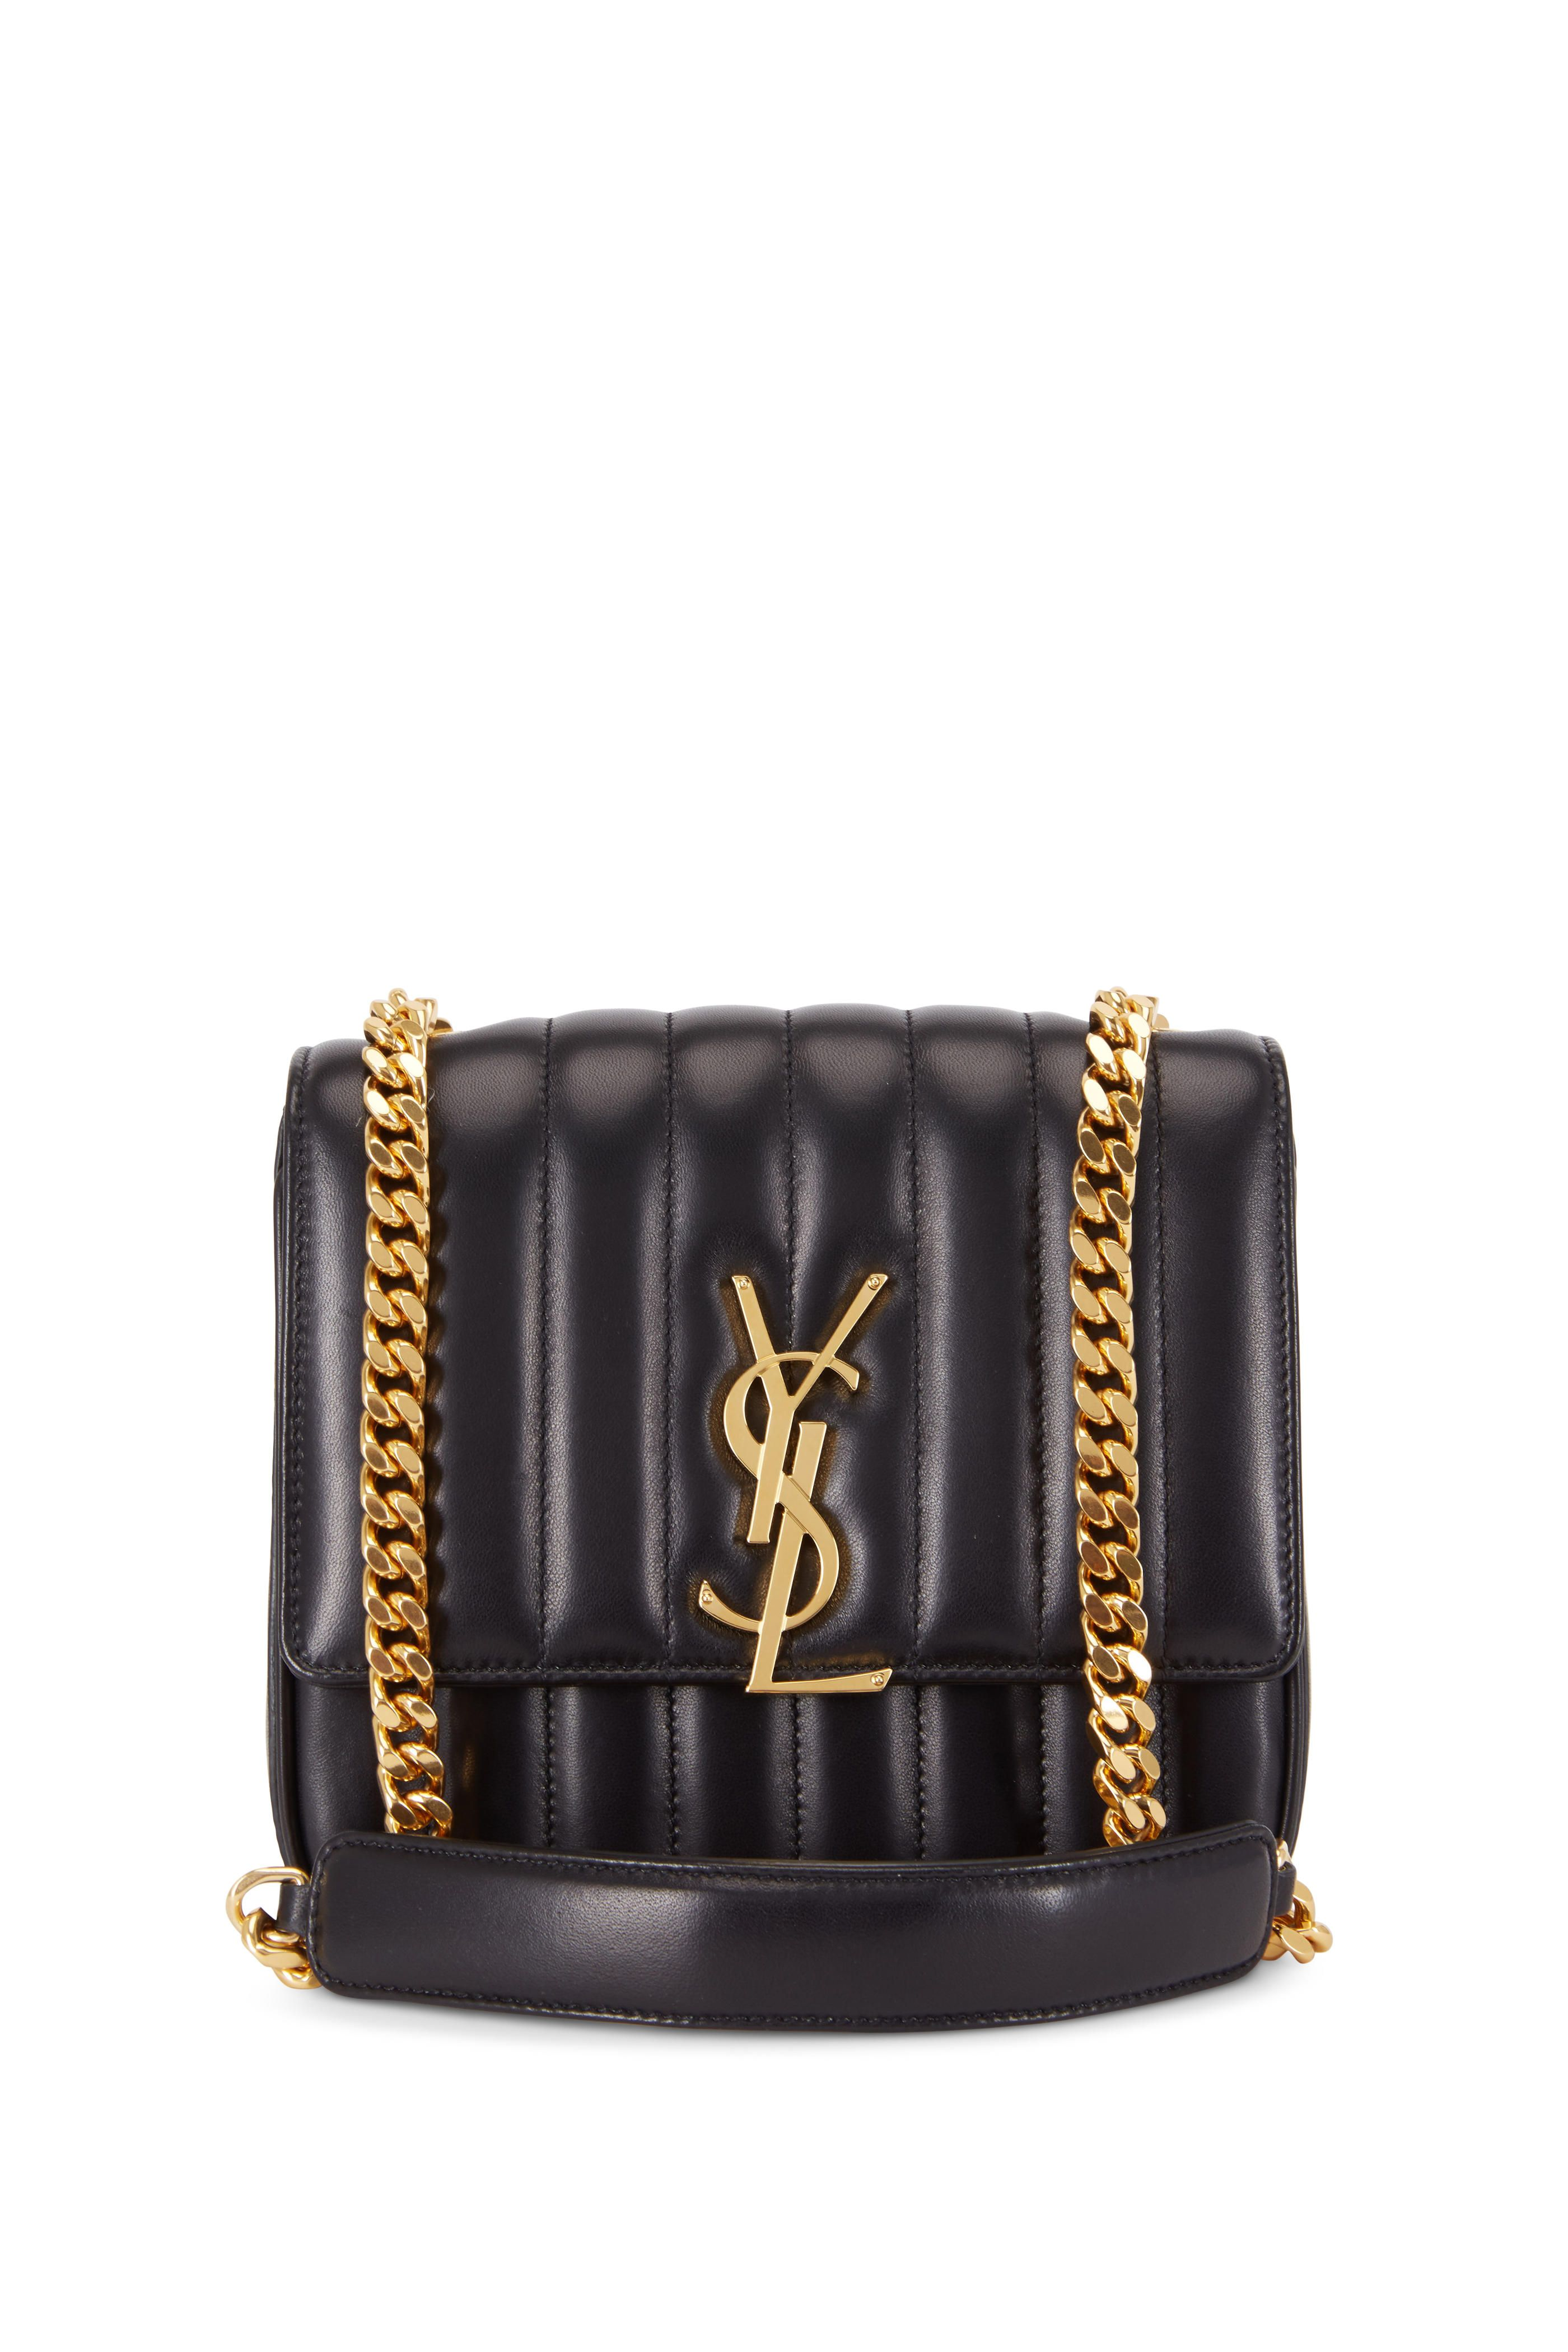 47432d71cb00 Free Shipping on Saint Laurent - Women s Vicky Monogram Black Leather Chain Shoulder  Bag . Shop online   in-store for the latest designer fashions from ...